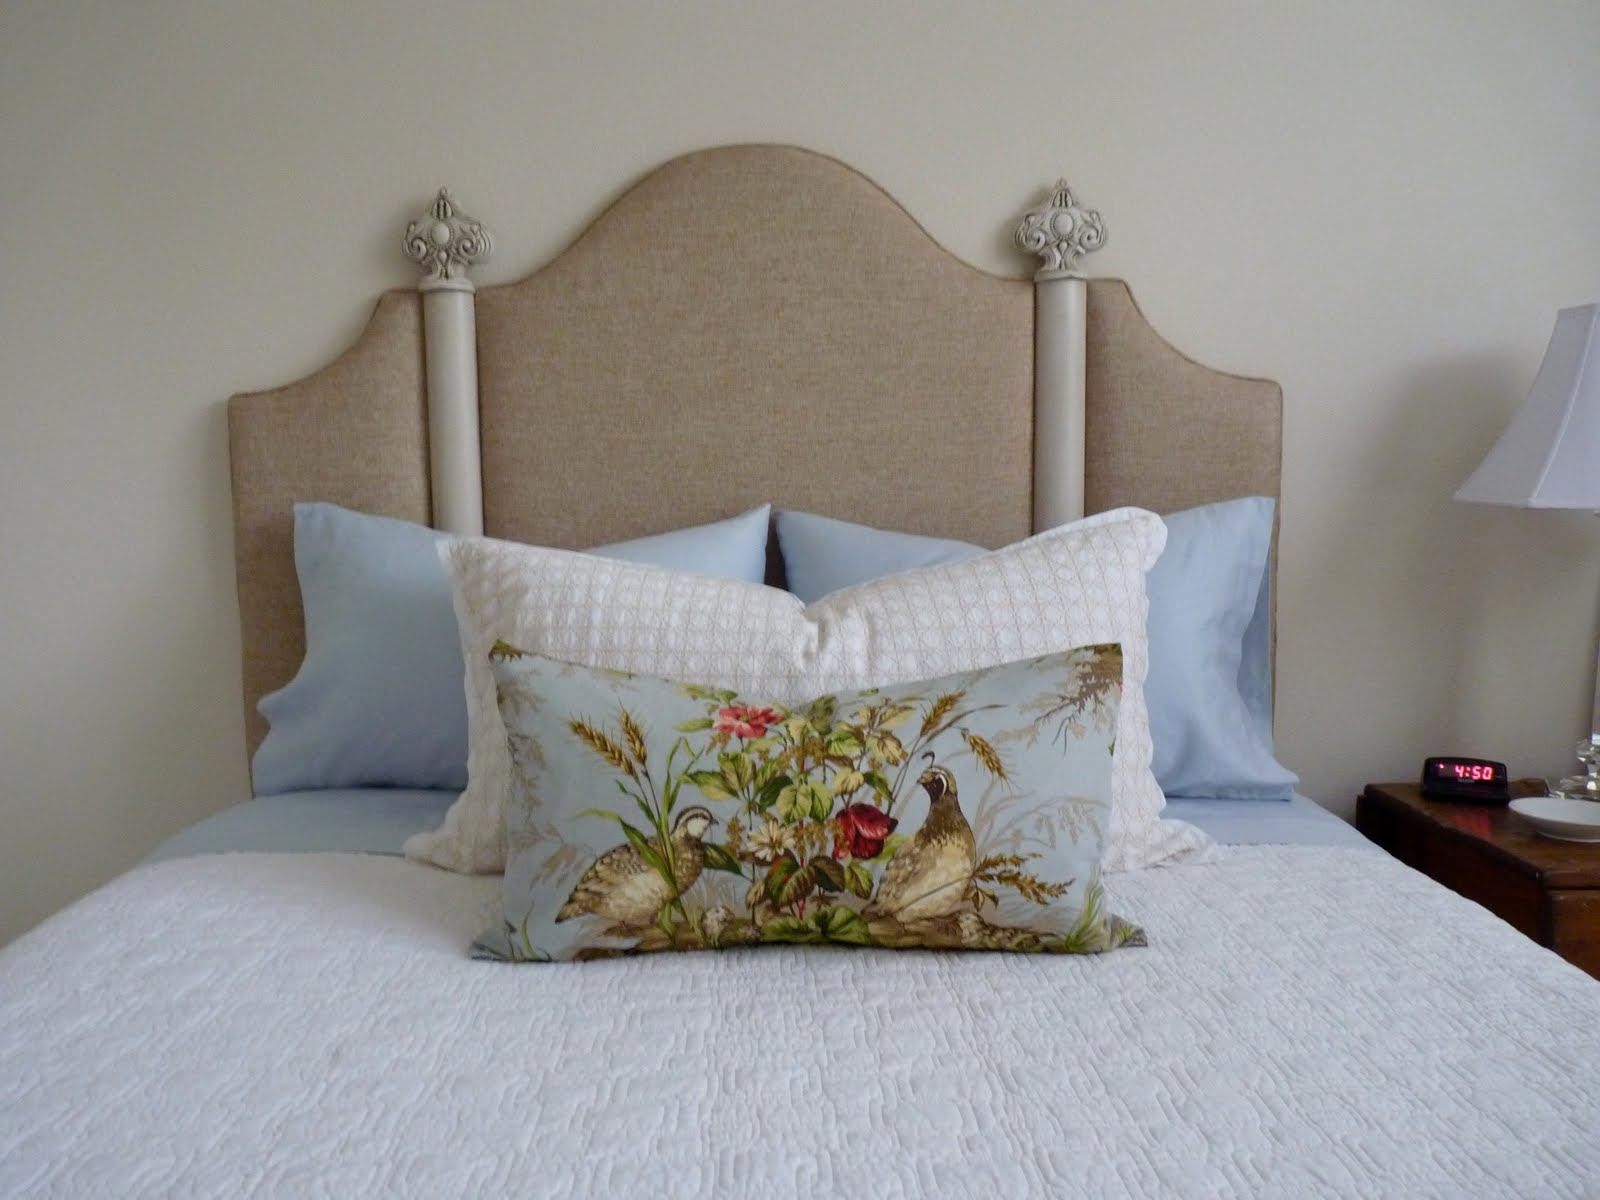 rowley company custom headboard with decorative hardware